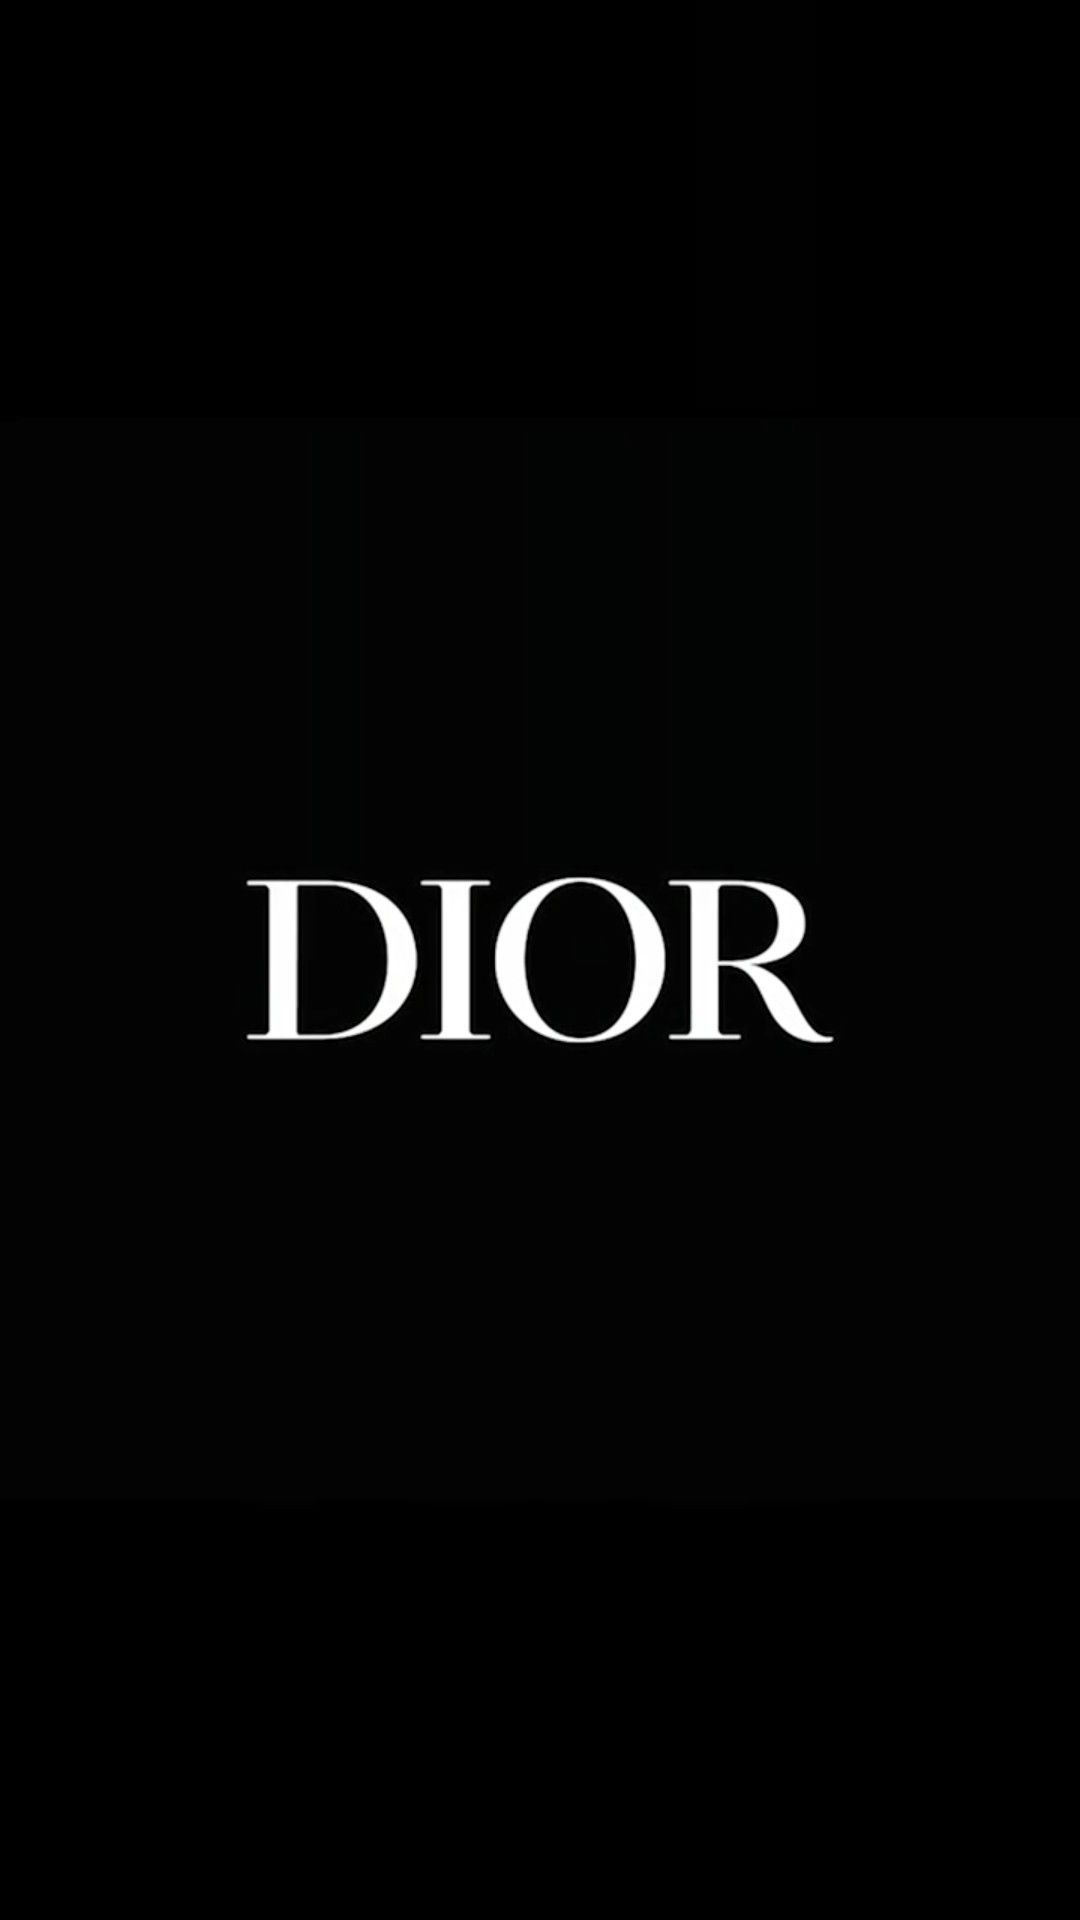 Dior Wallpaper In 2020 Classy Wallpaper Black And White Photo Wall Photo Wall Collage